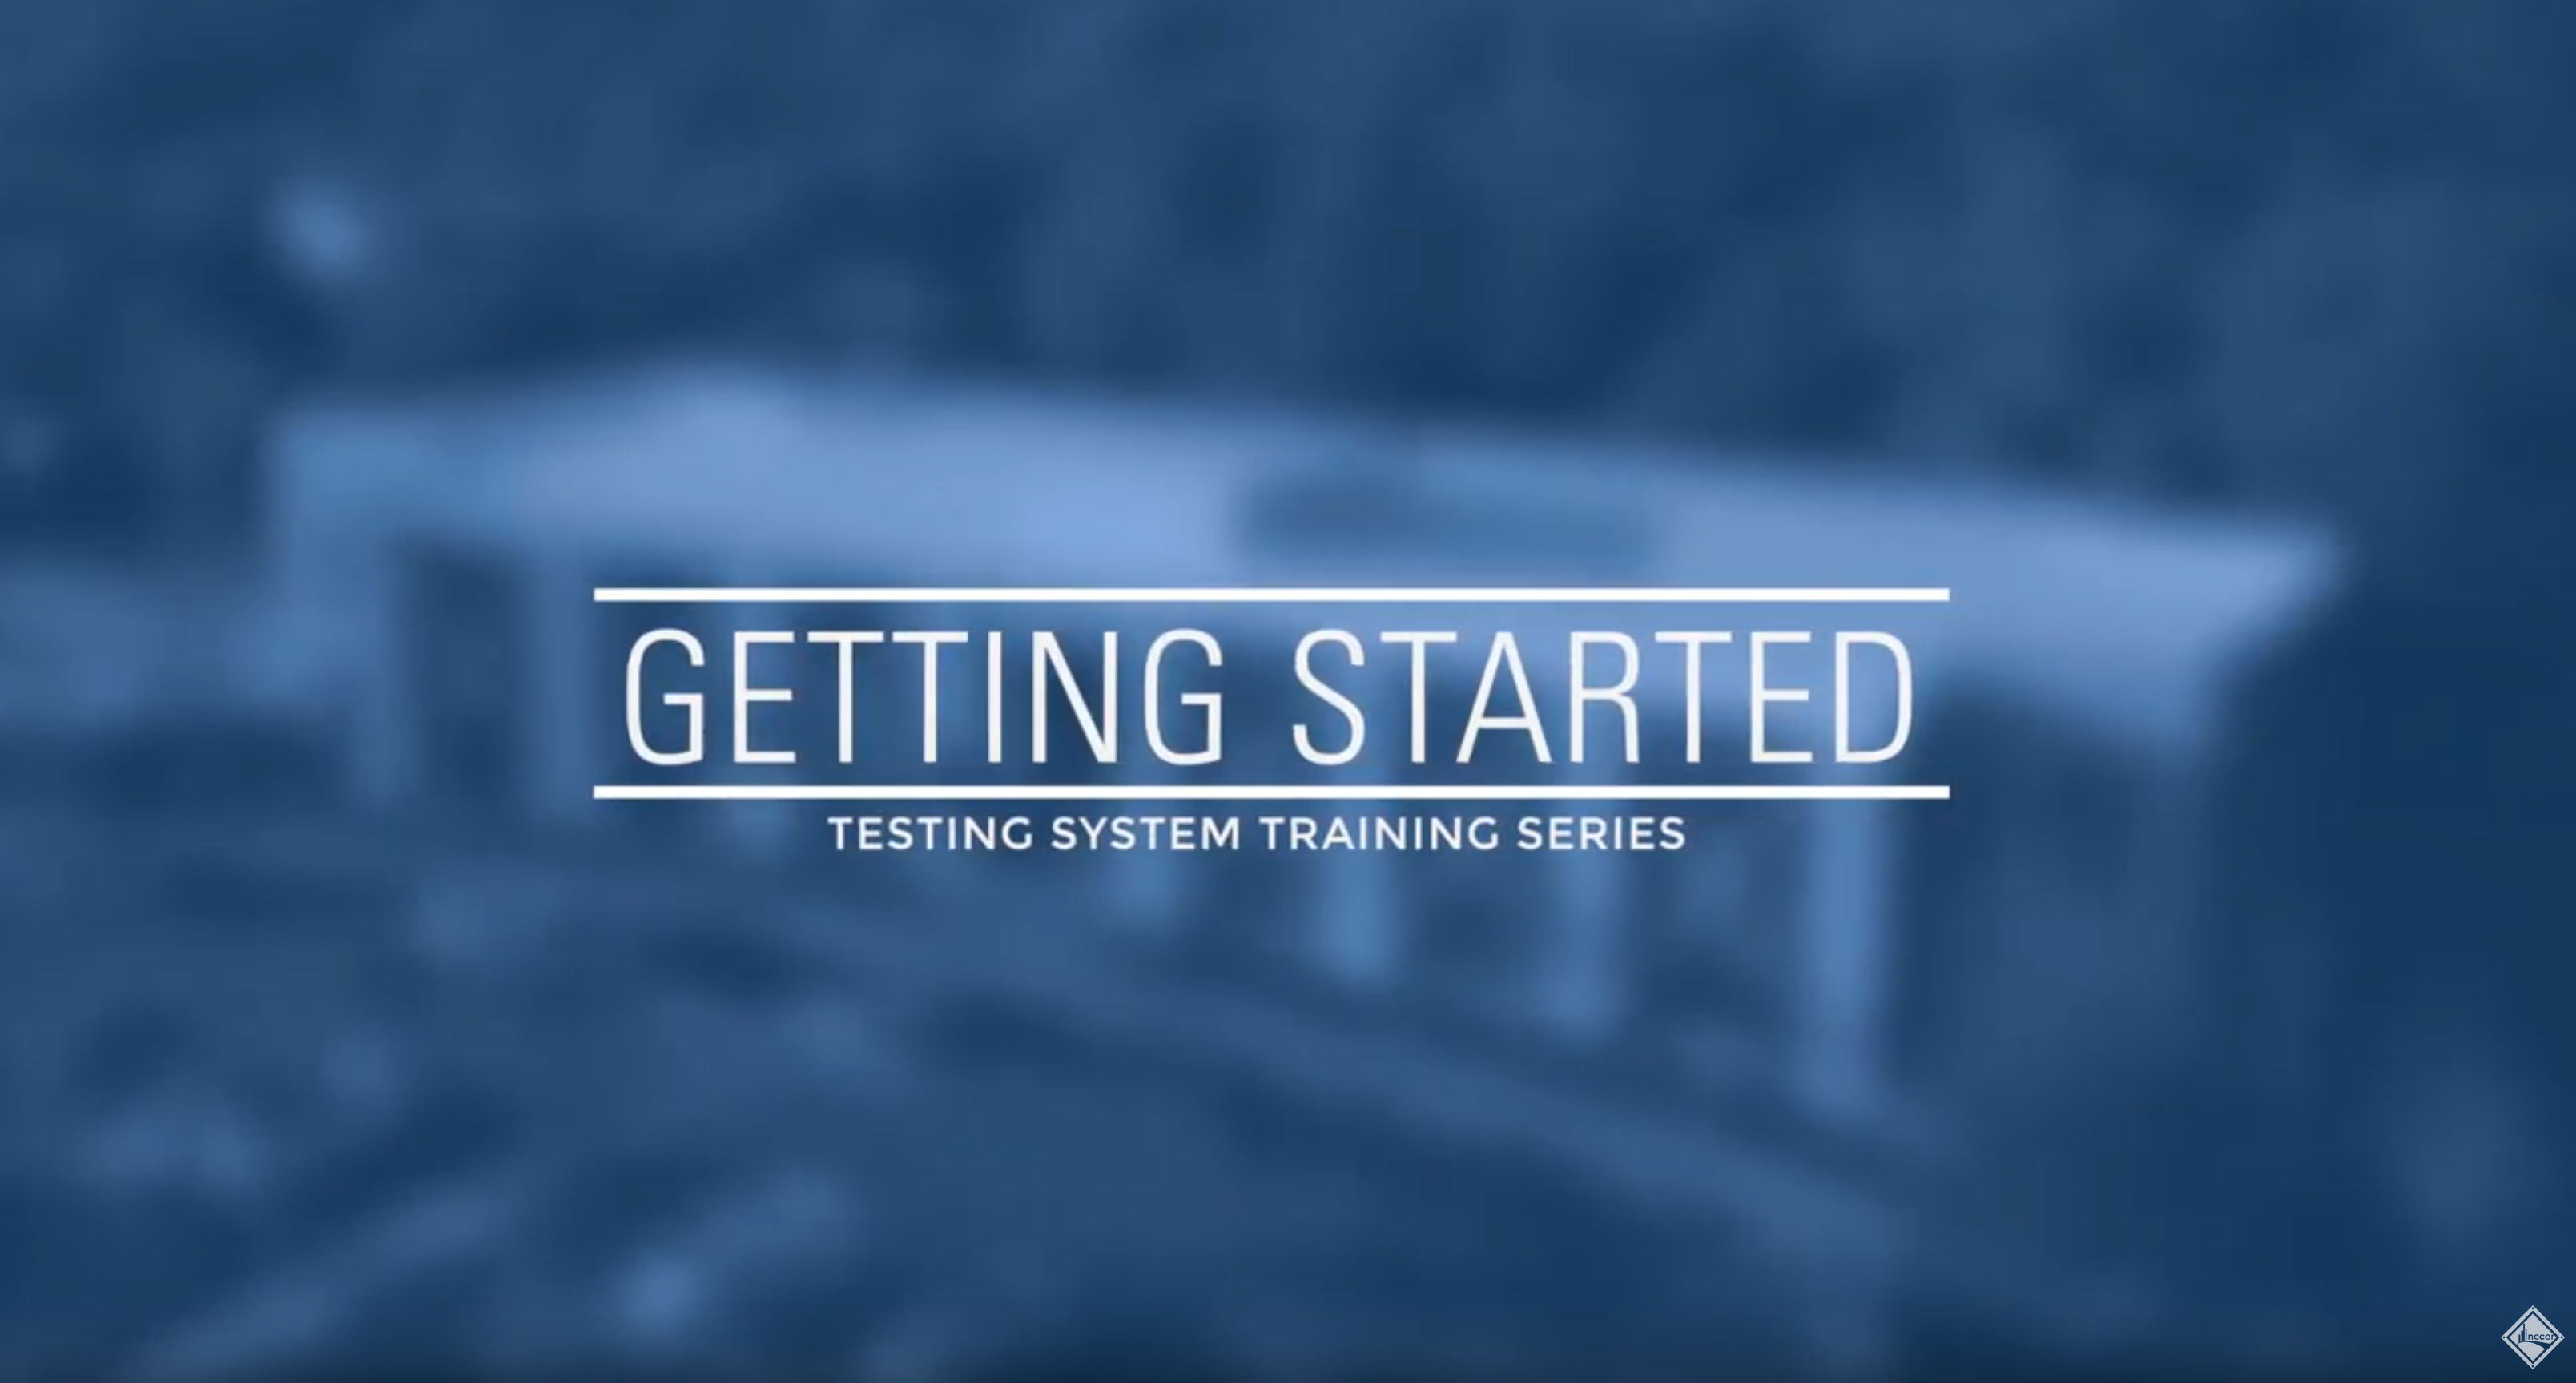 Testing System Video Playlist Thumbnail